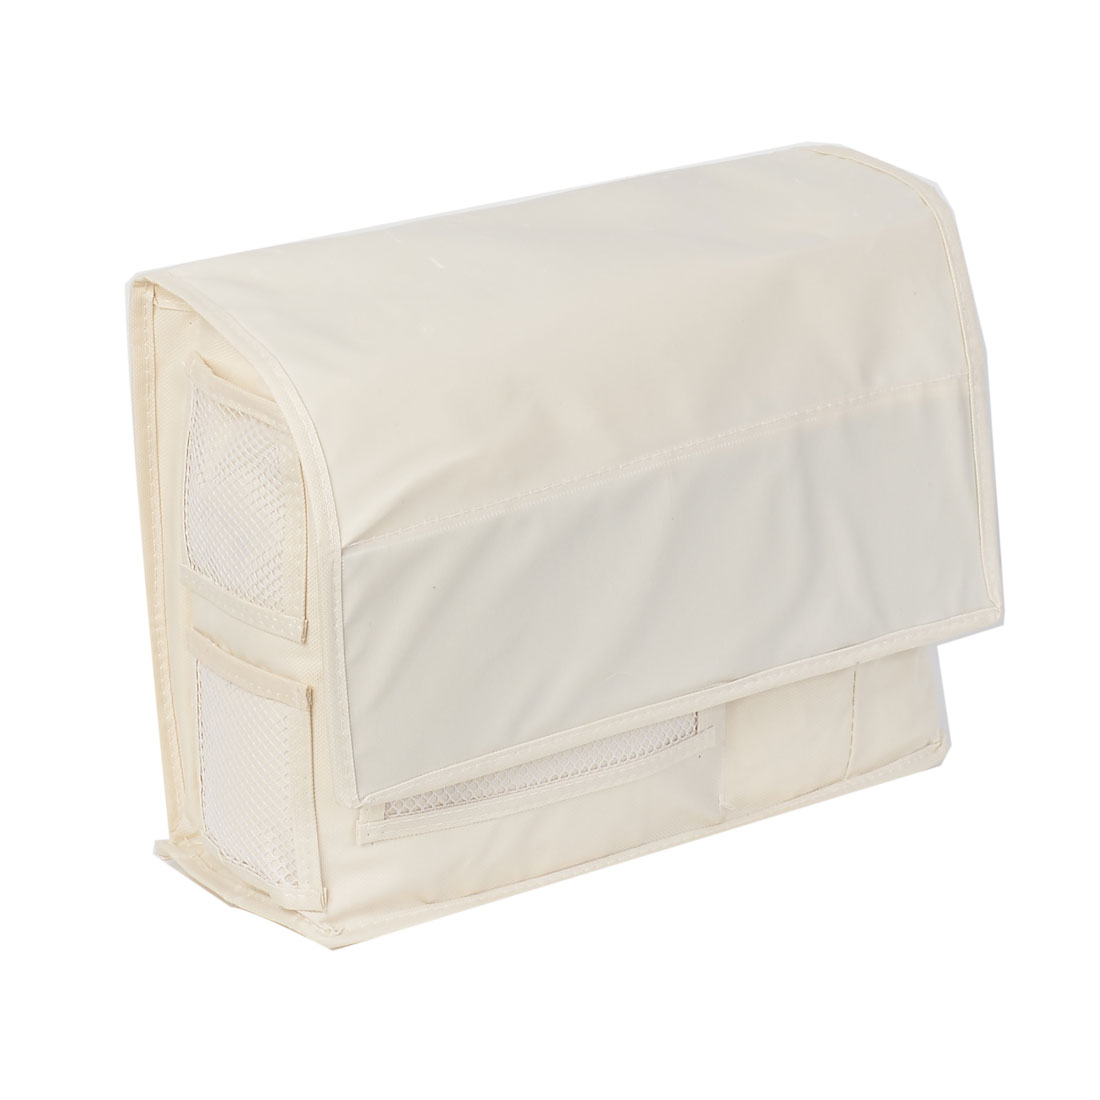 Bedside Sofa Hanging Bag Holder Caddy Pockets Organizer Storage Beige